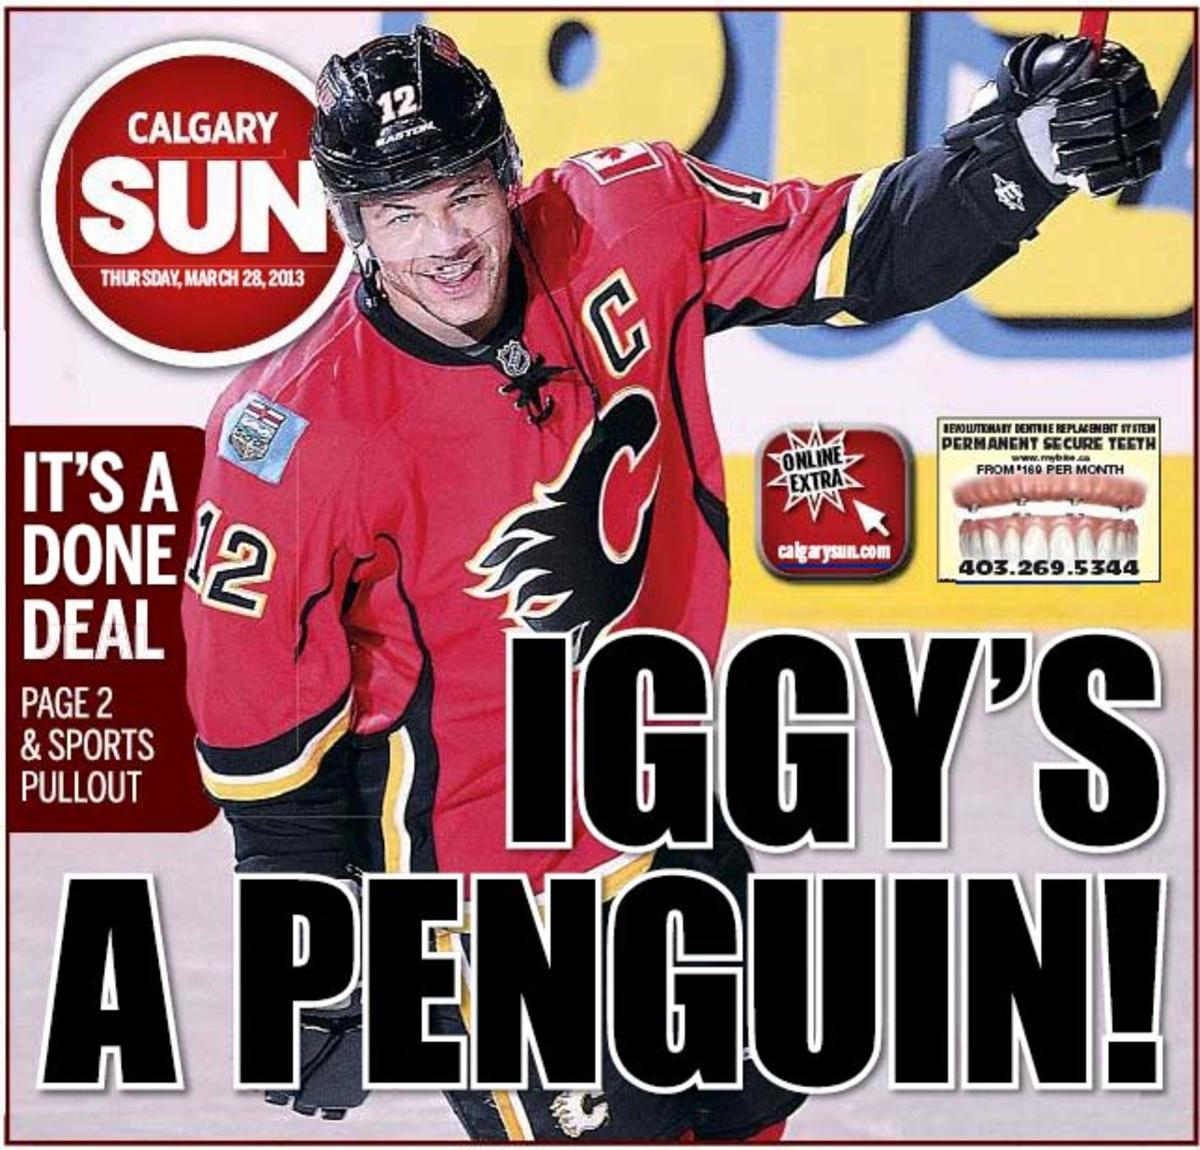 The Calgary Sun's front page headline about the Jarome Iginla trade.